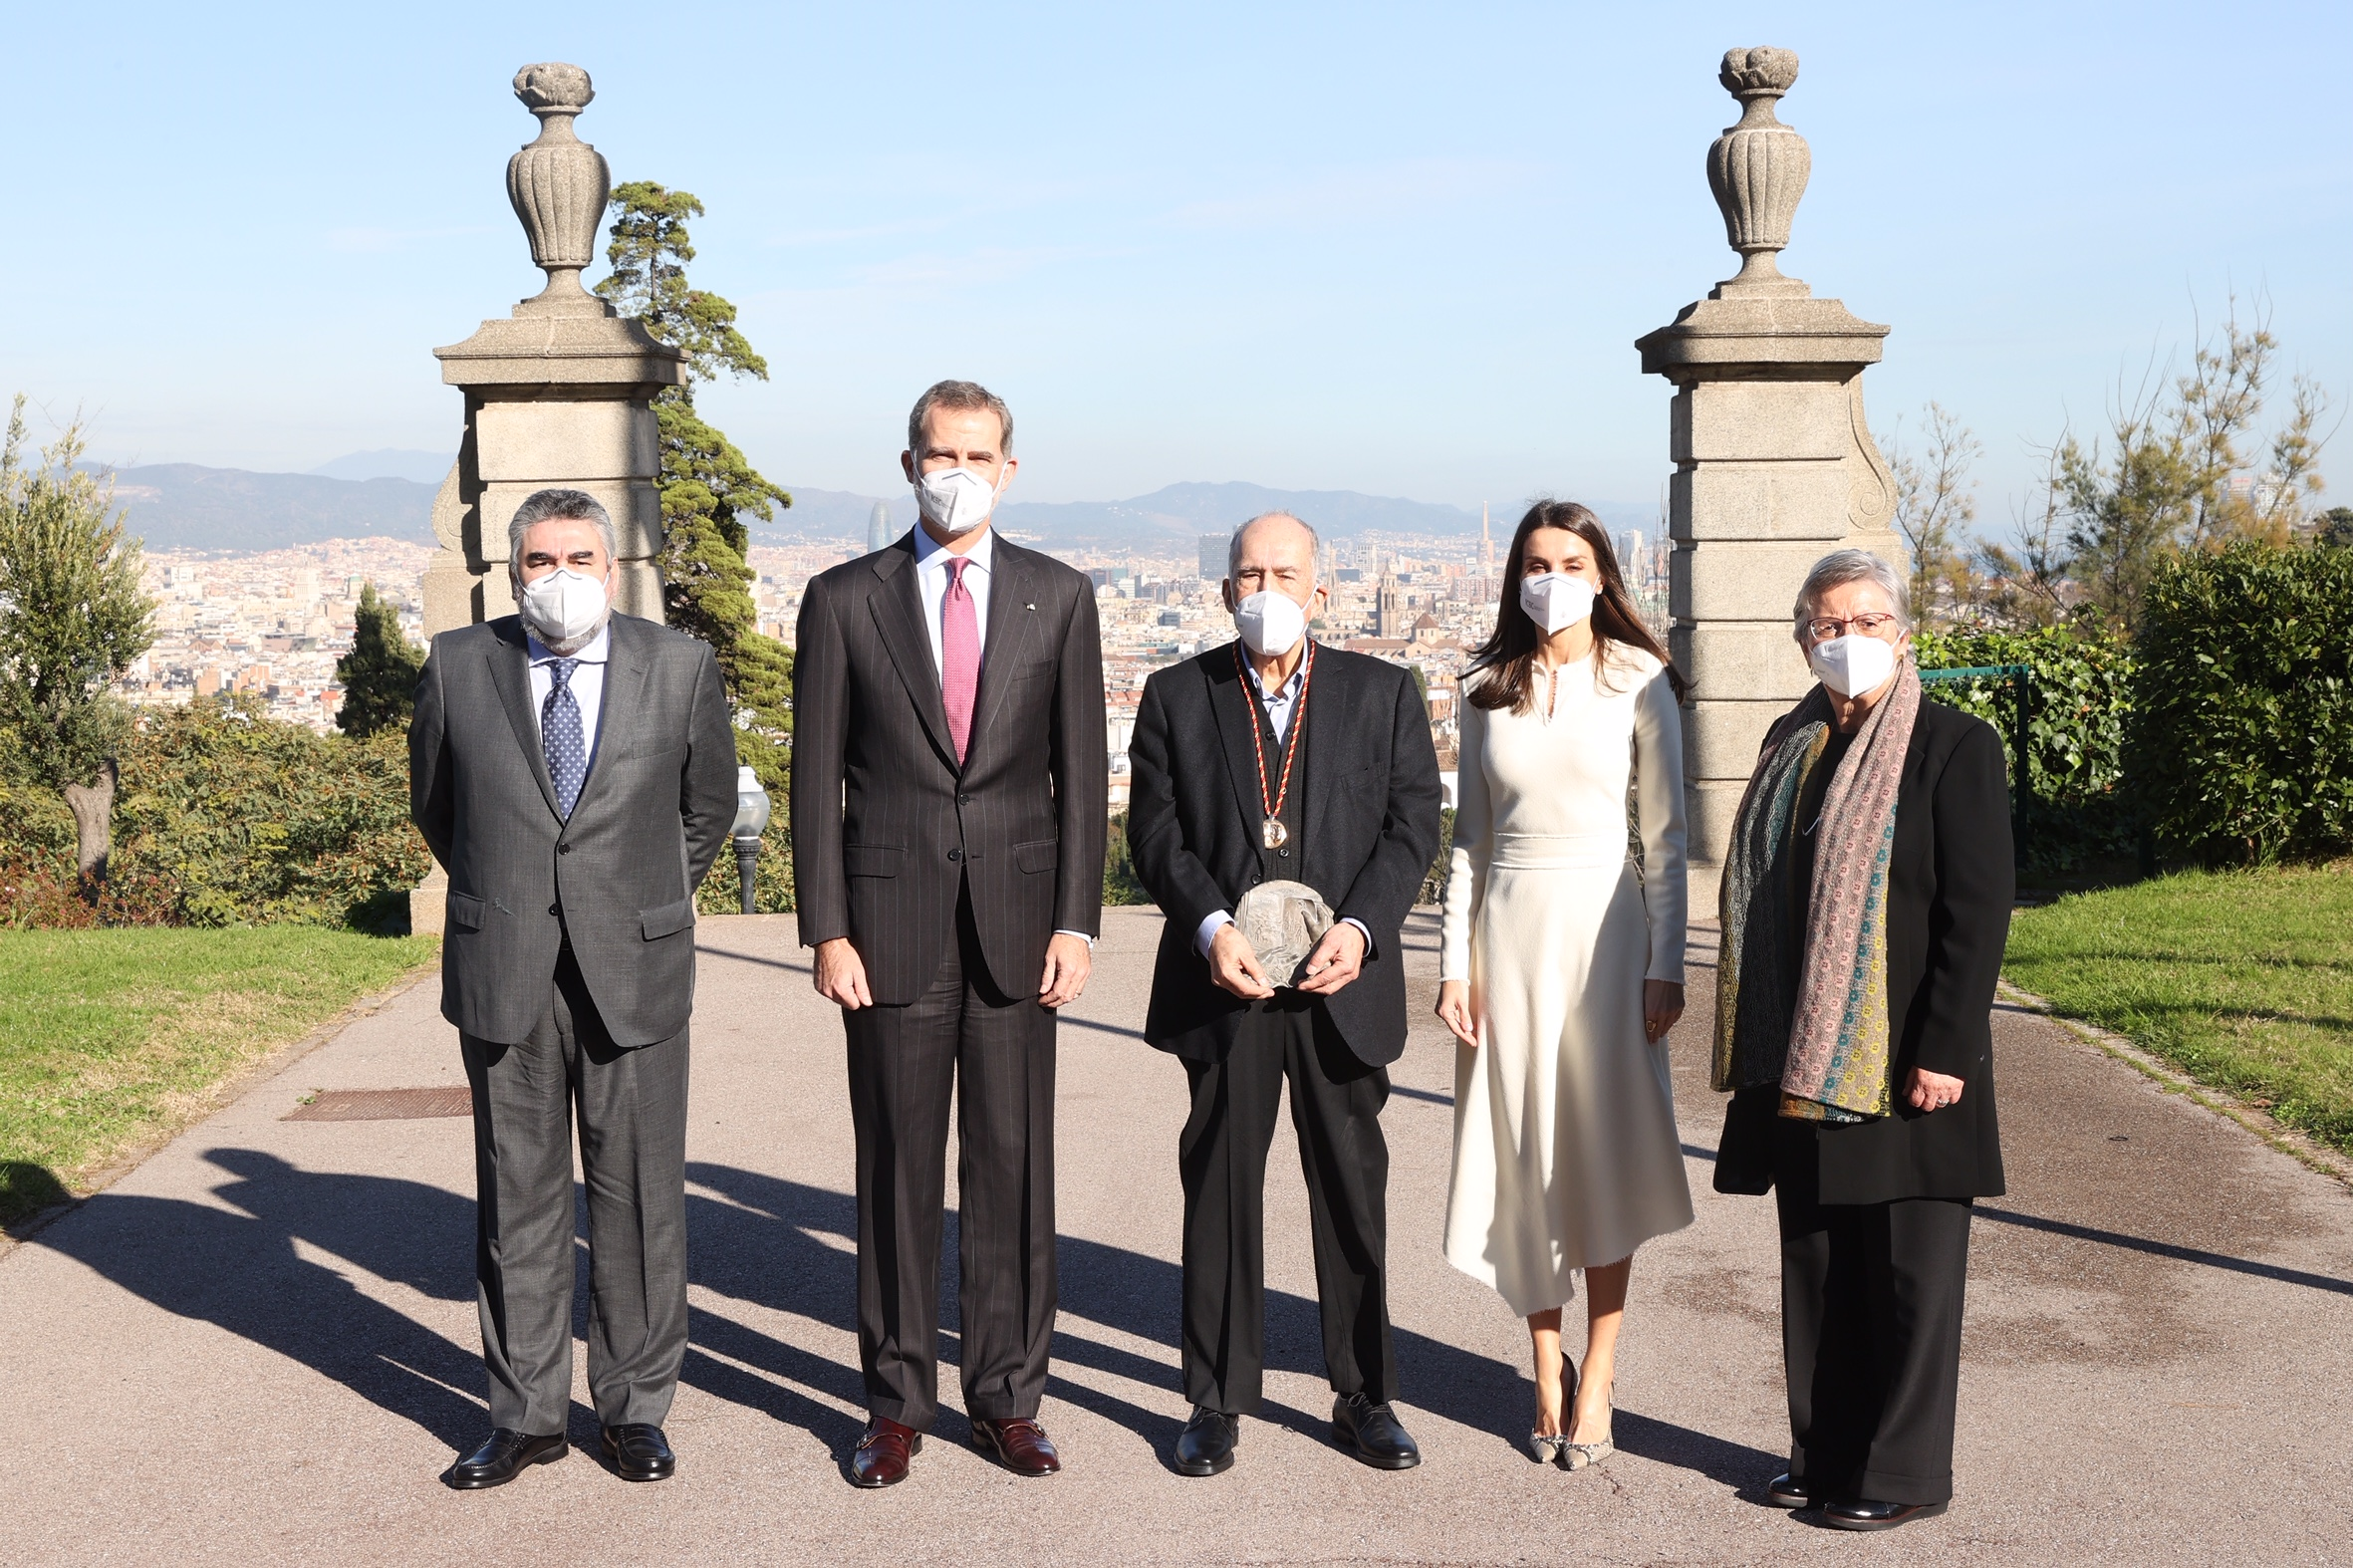 King Felipe and Queen Letizia of Spain in Barcelona for Literature Award